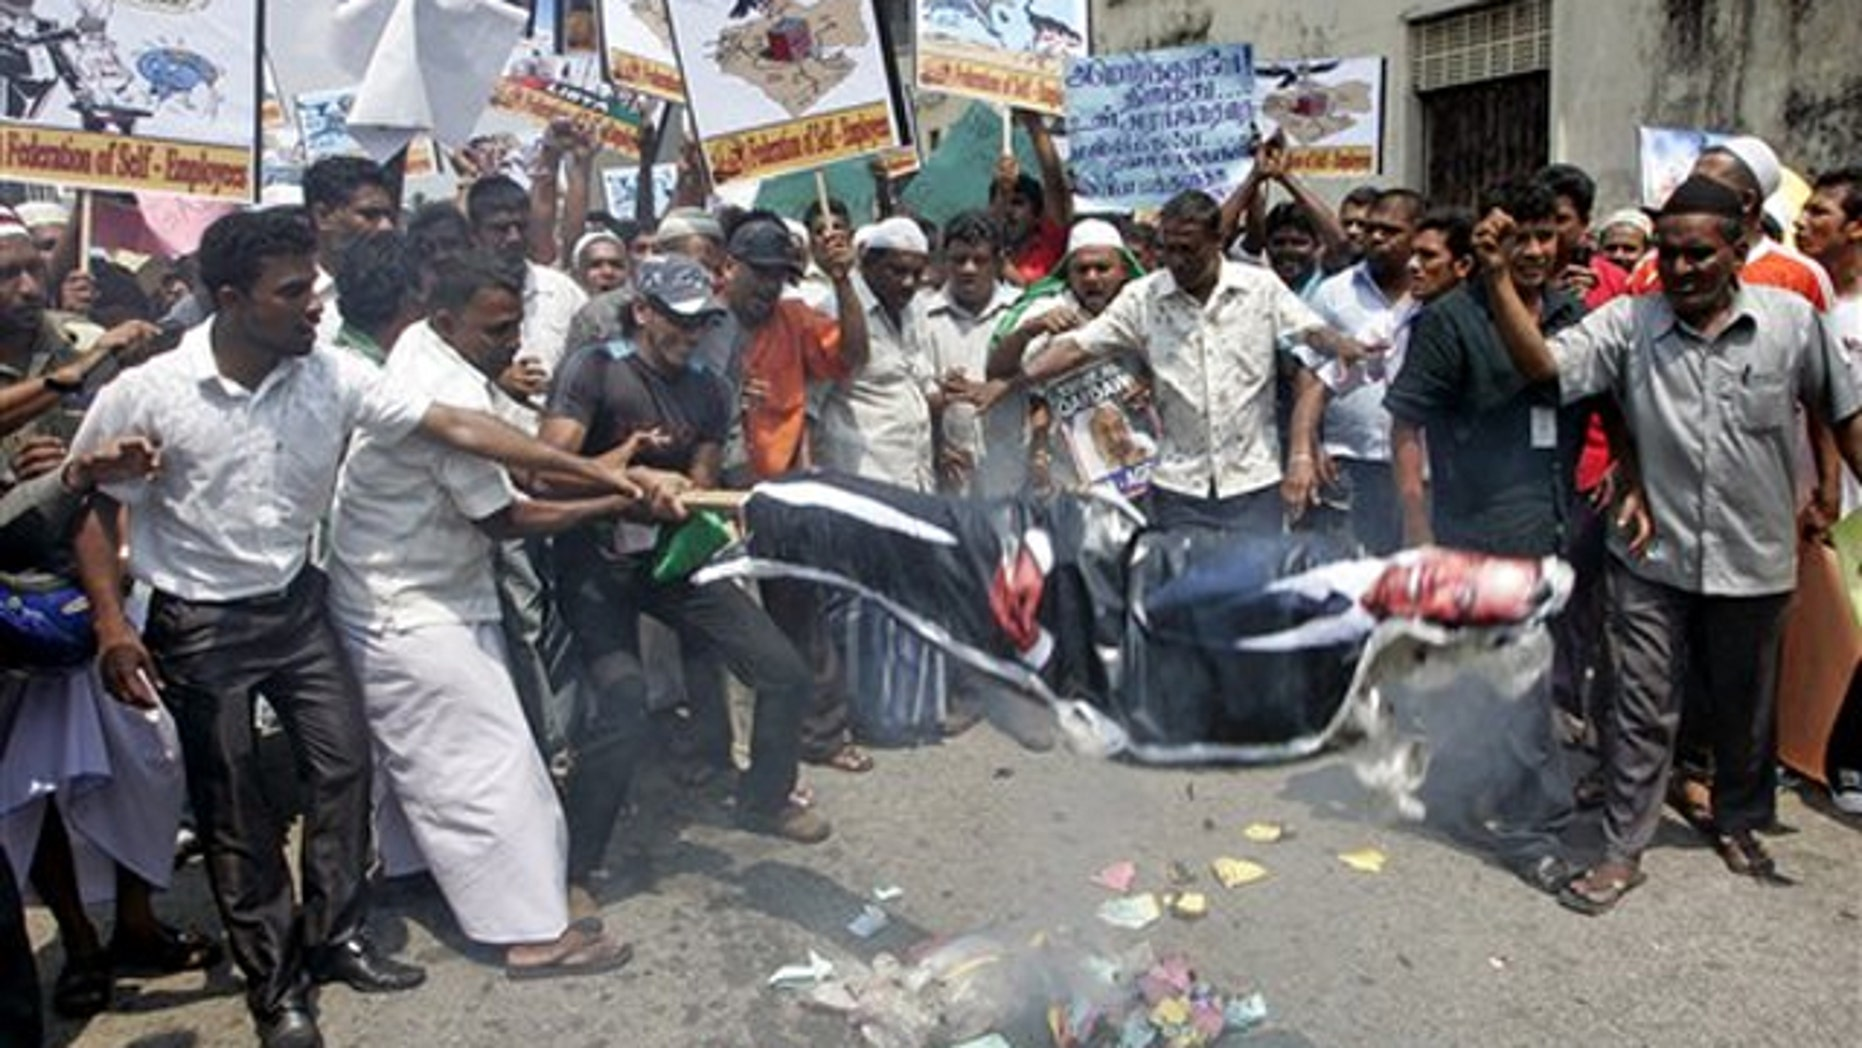 Sri Lankan Muslims burn an effigy of President Obama during a protest rally against the allied forces' air strike in Libya, in Colombo, Sri Lanka, March 25.